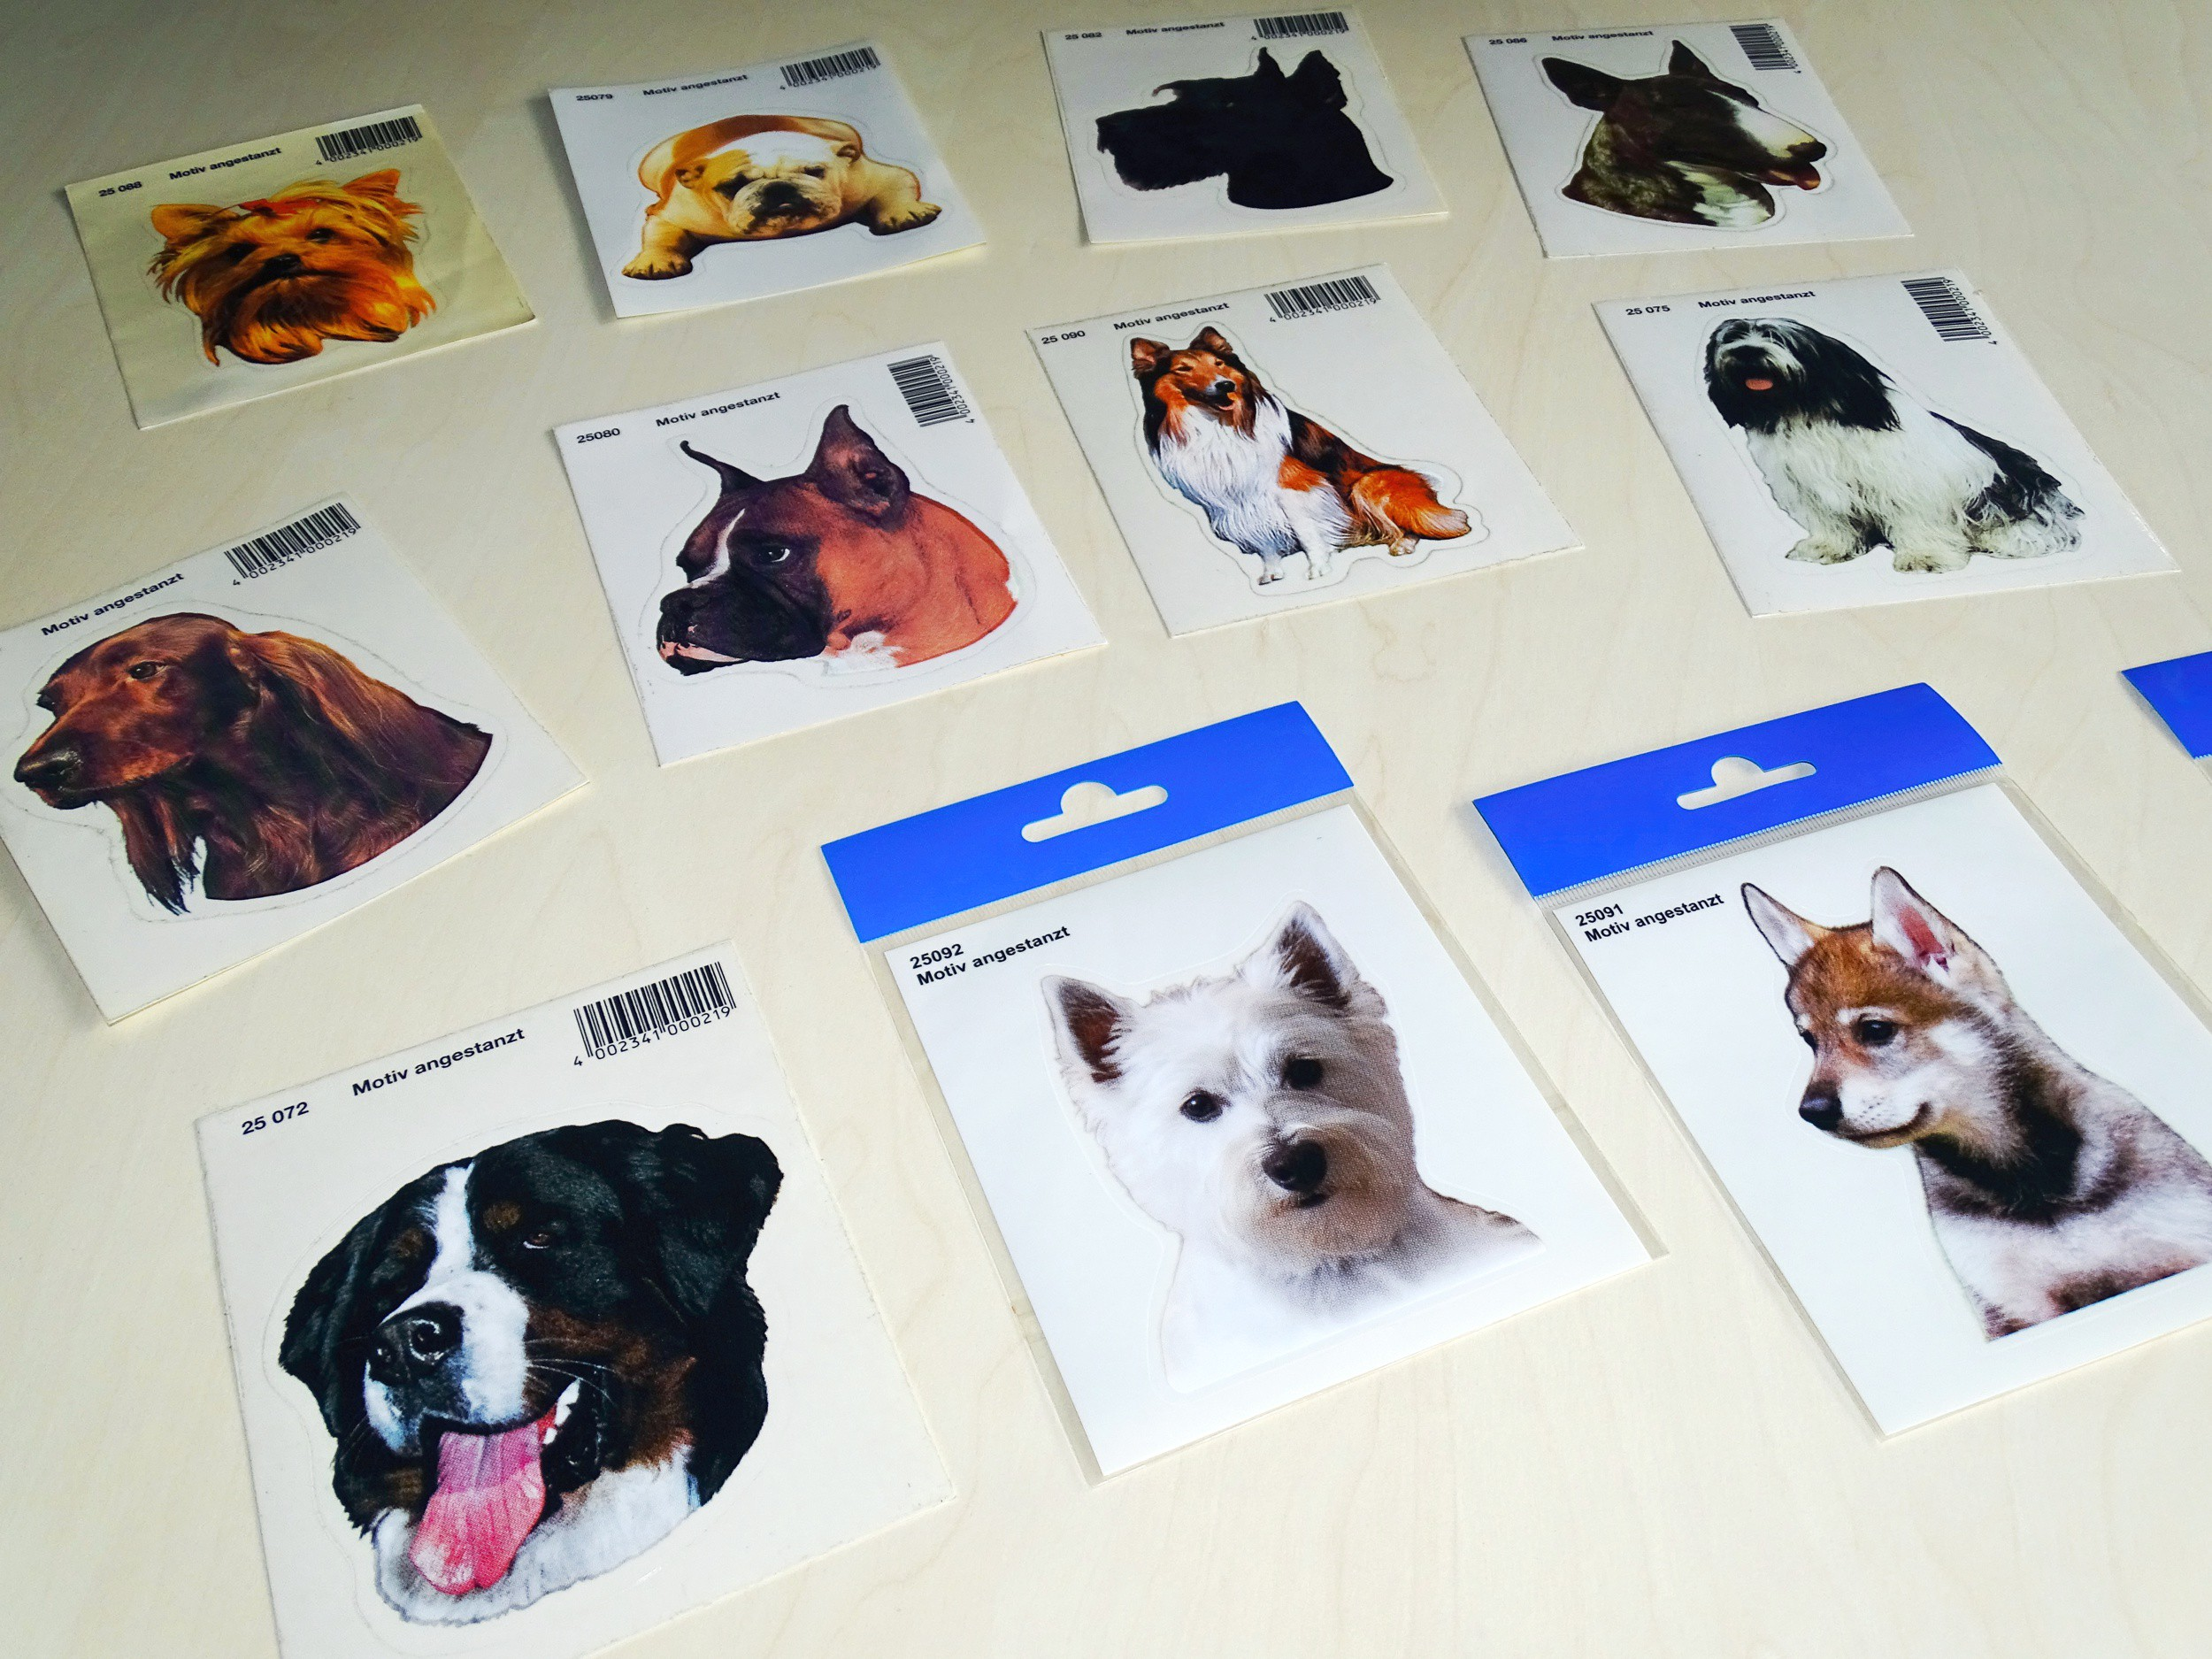 Sticker herder dog 125 x 110 mm – Bild 3